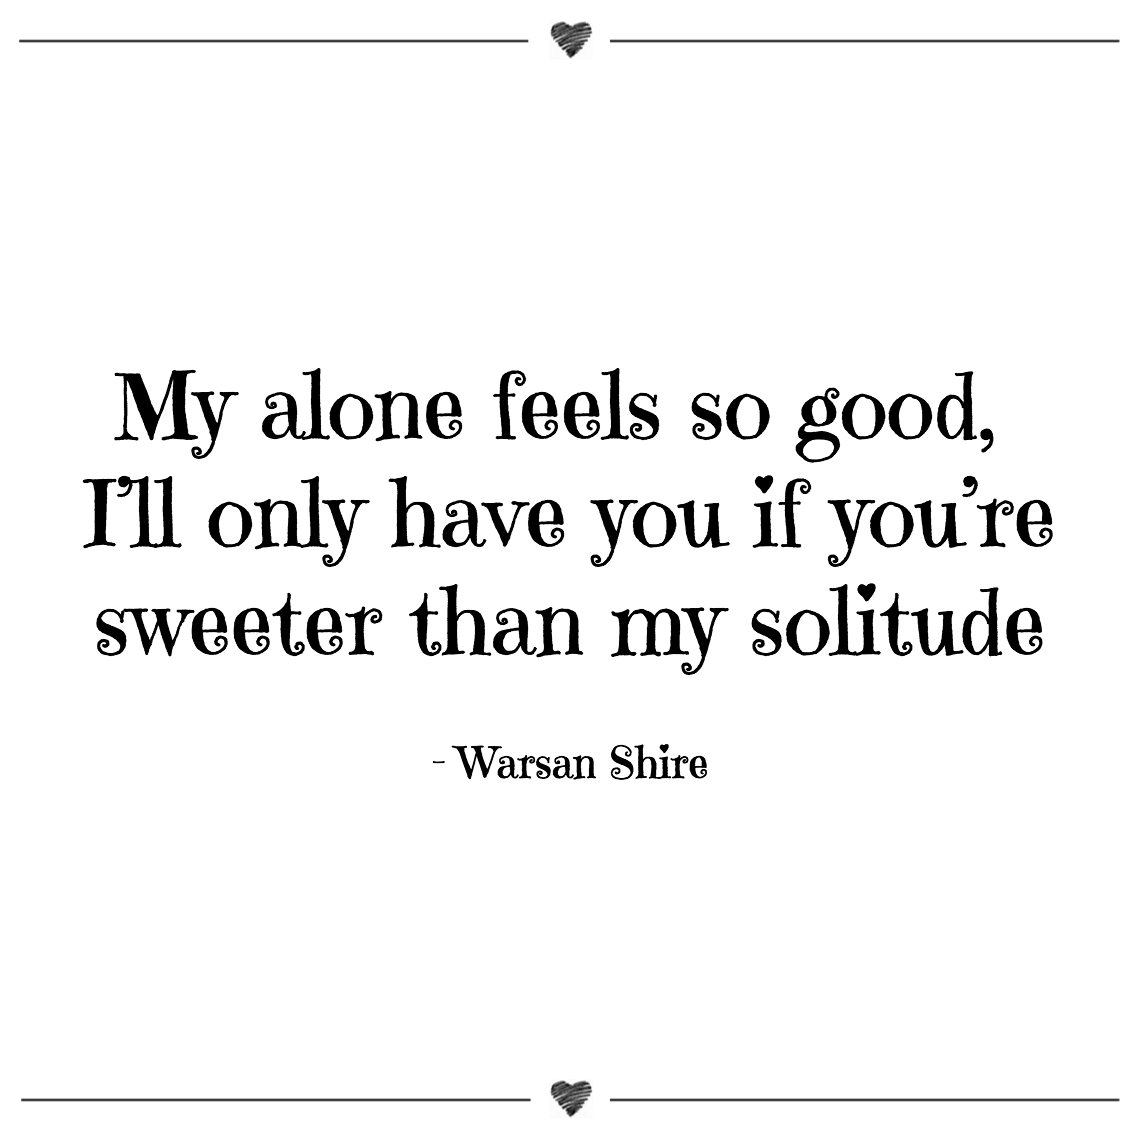 My alone feels so good, i'll only have you if you're sweeter than my solitude warsan shire (1)